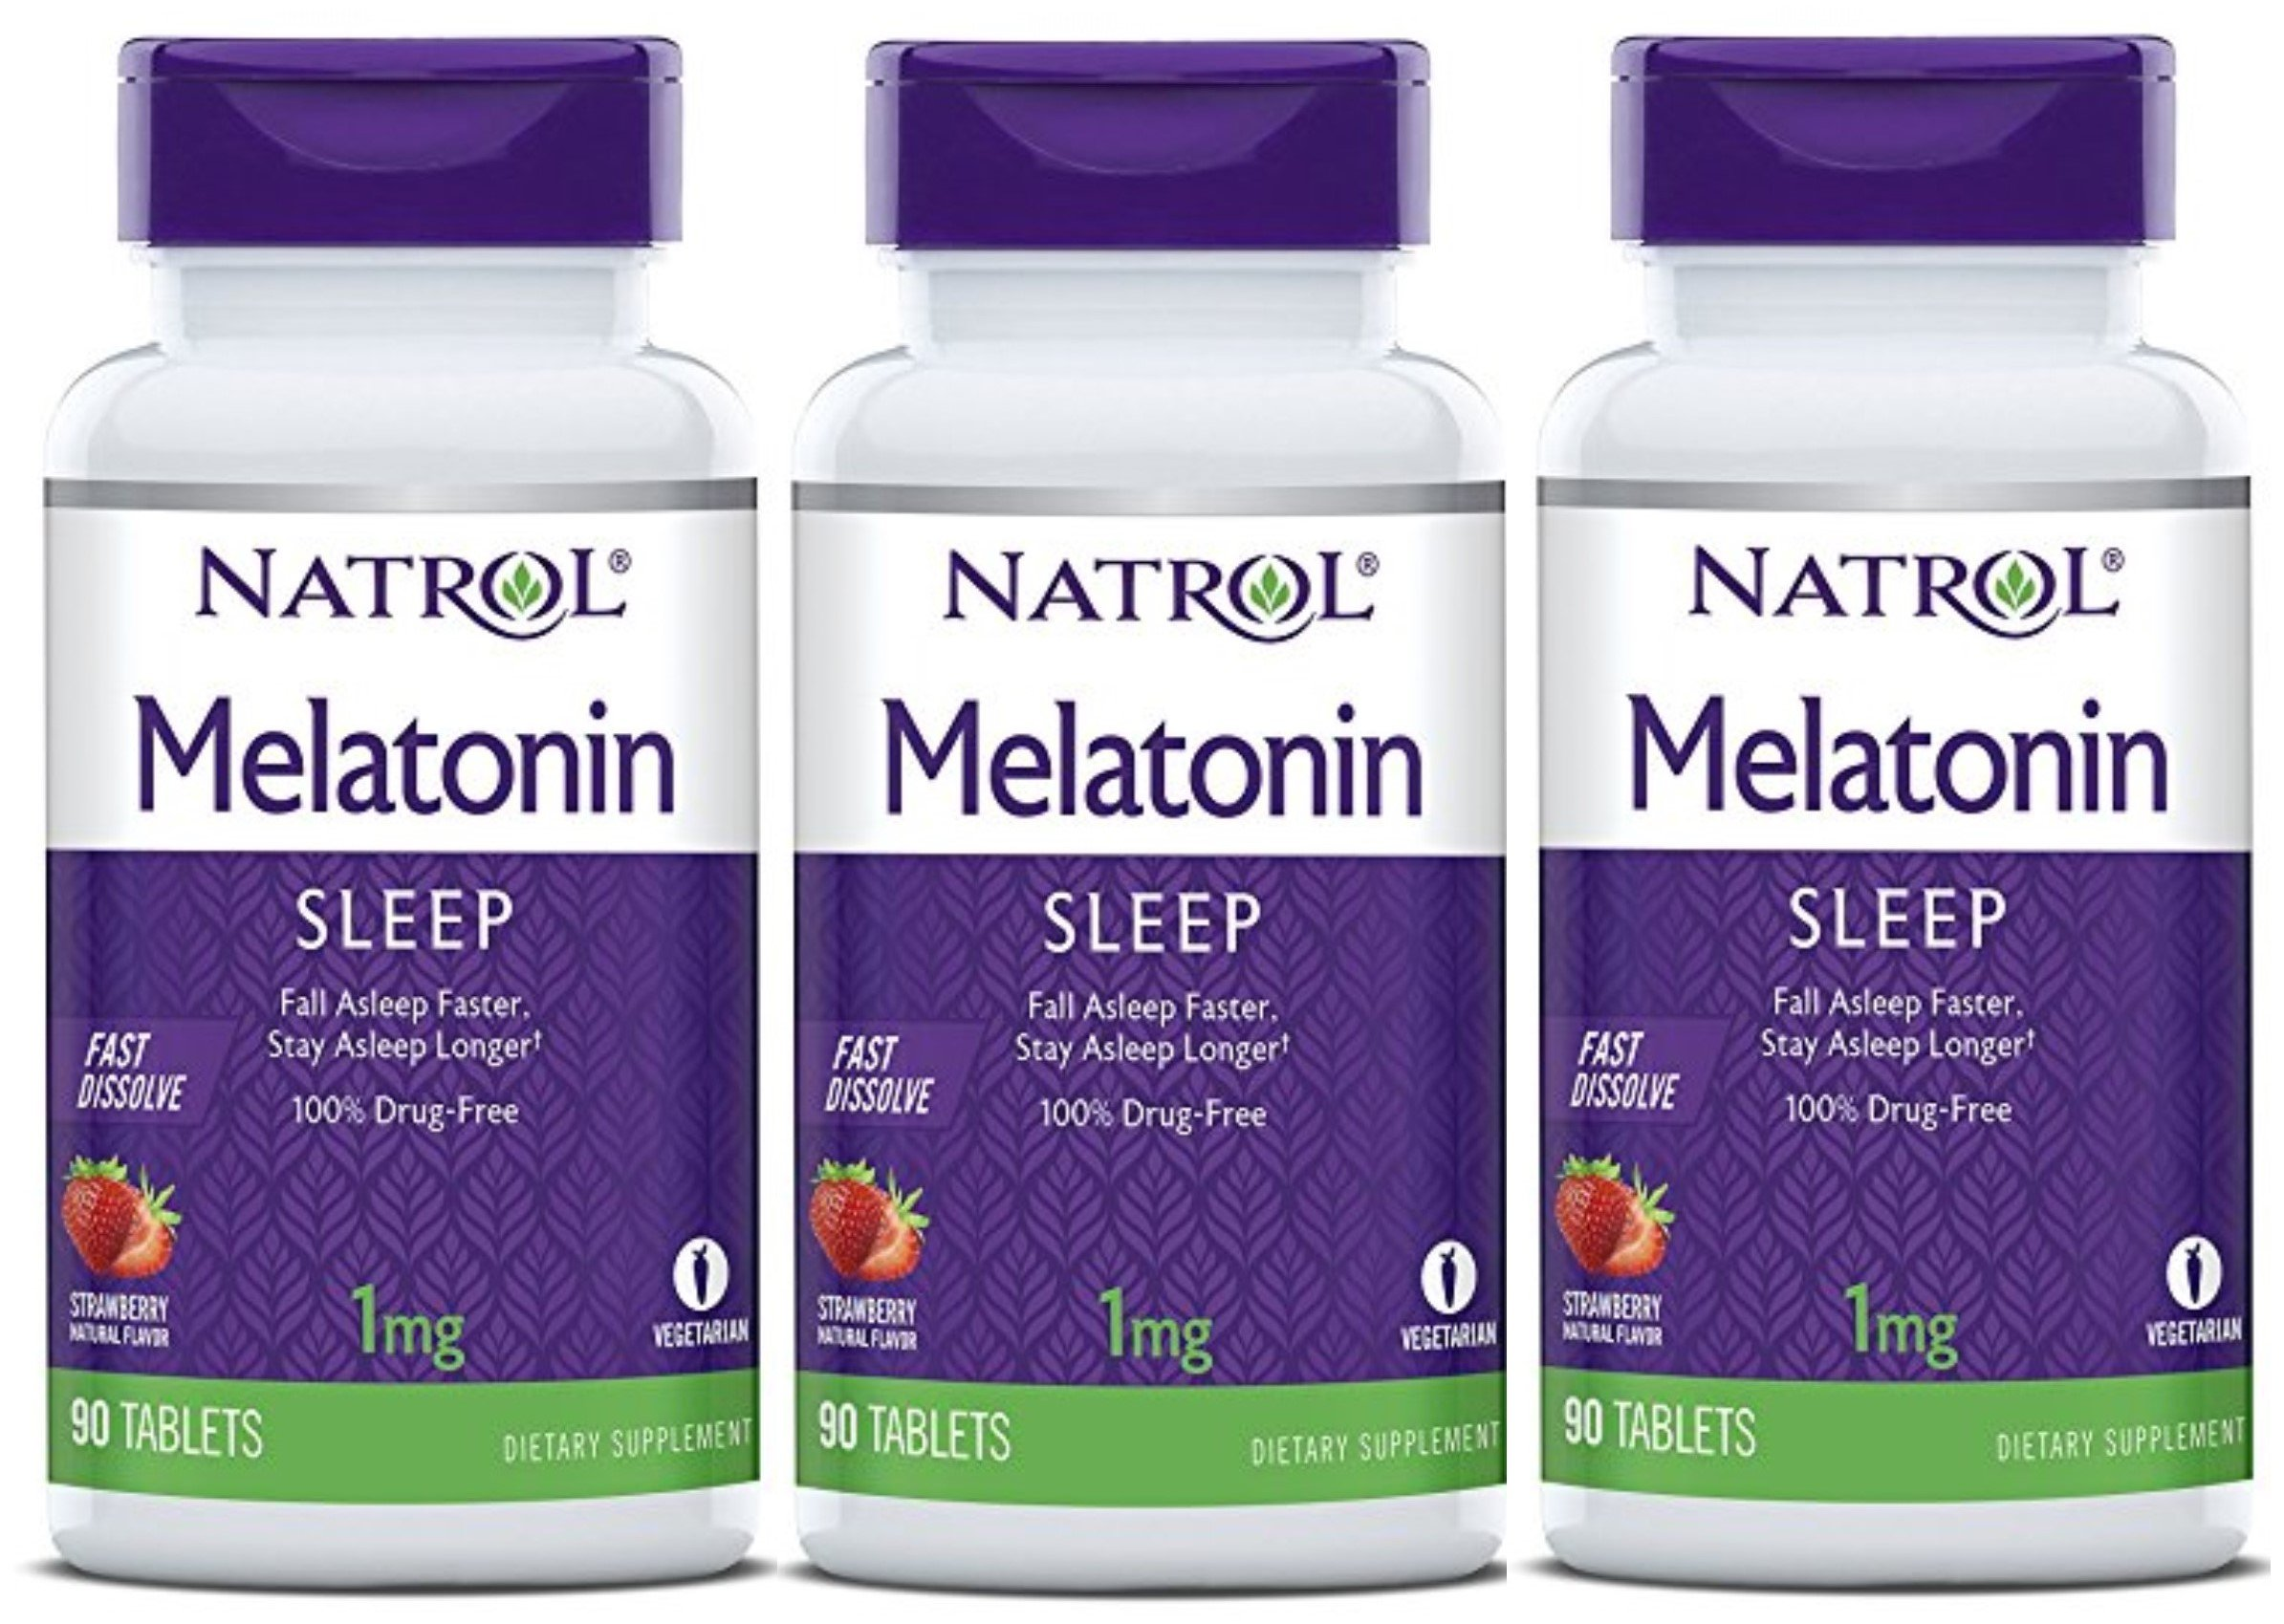 Natrol Melatonin 1mg Fast Dissolve Tablets, Strawberry, 90-Count (Pack of 3